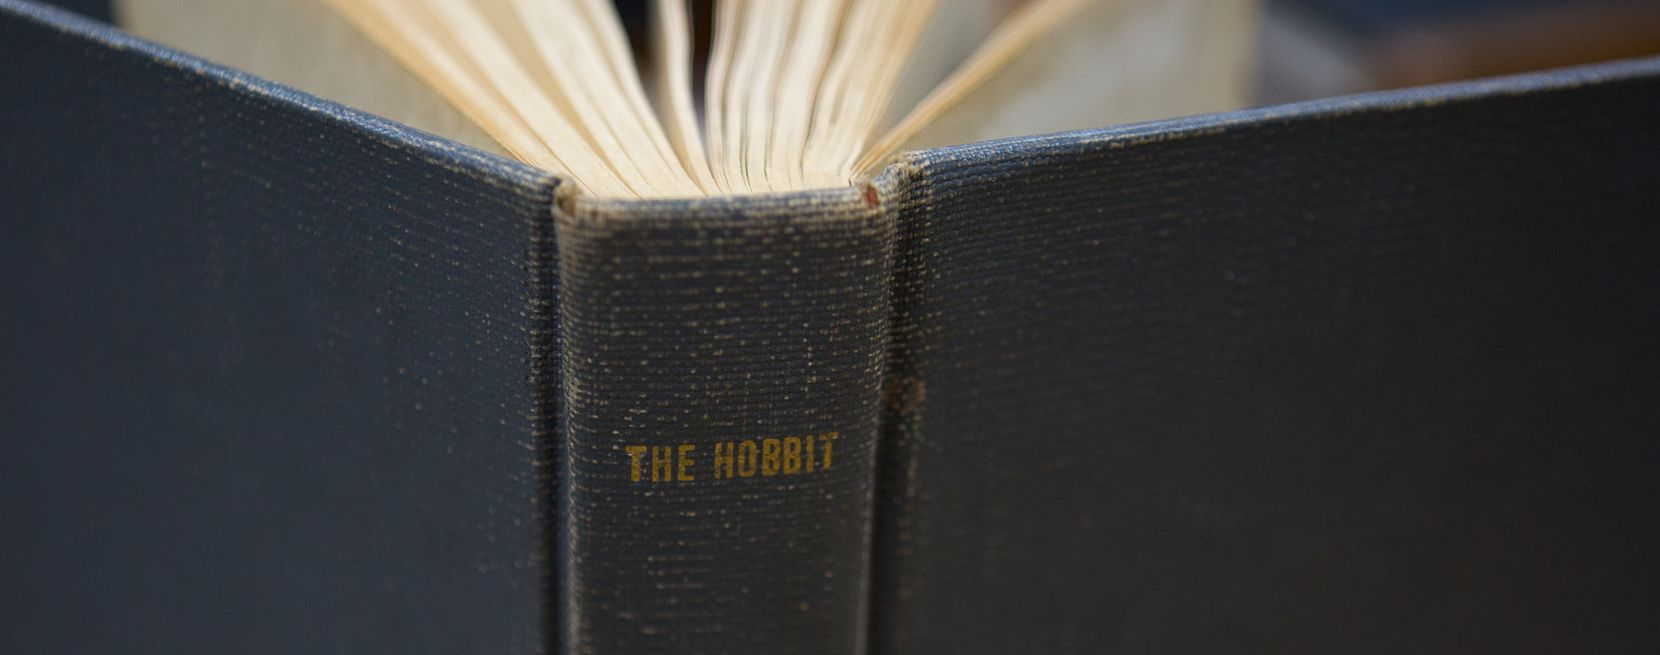 A first round print and first edition 1938 copy of The Hobbit by J.R.R. Tolkien was returned to the University of North Texas Libraries with an anonymous letter. The book is being returned after more than 40 years. Photo taken Thursday, April 11, 2019 at the UNT library annex in Denton, Texas.